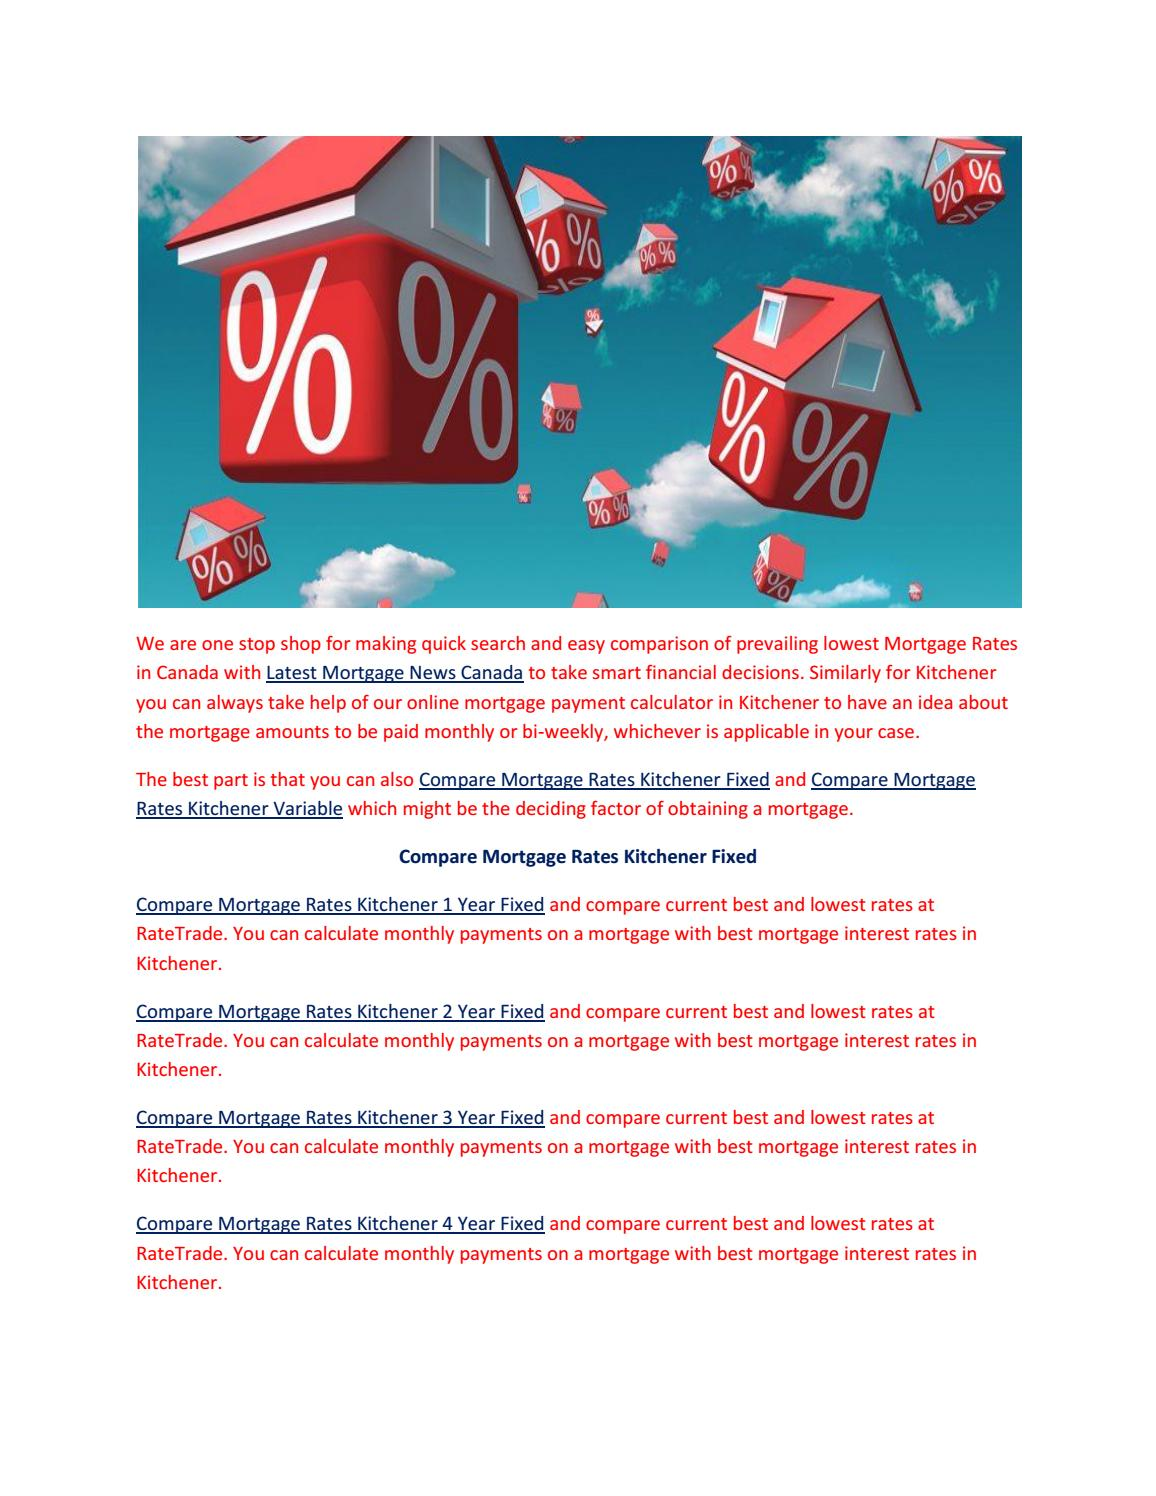 Mortgage Rates Kitchener by ratetrade.ca - issuu